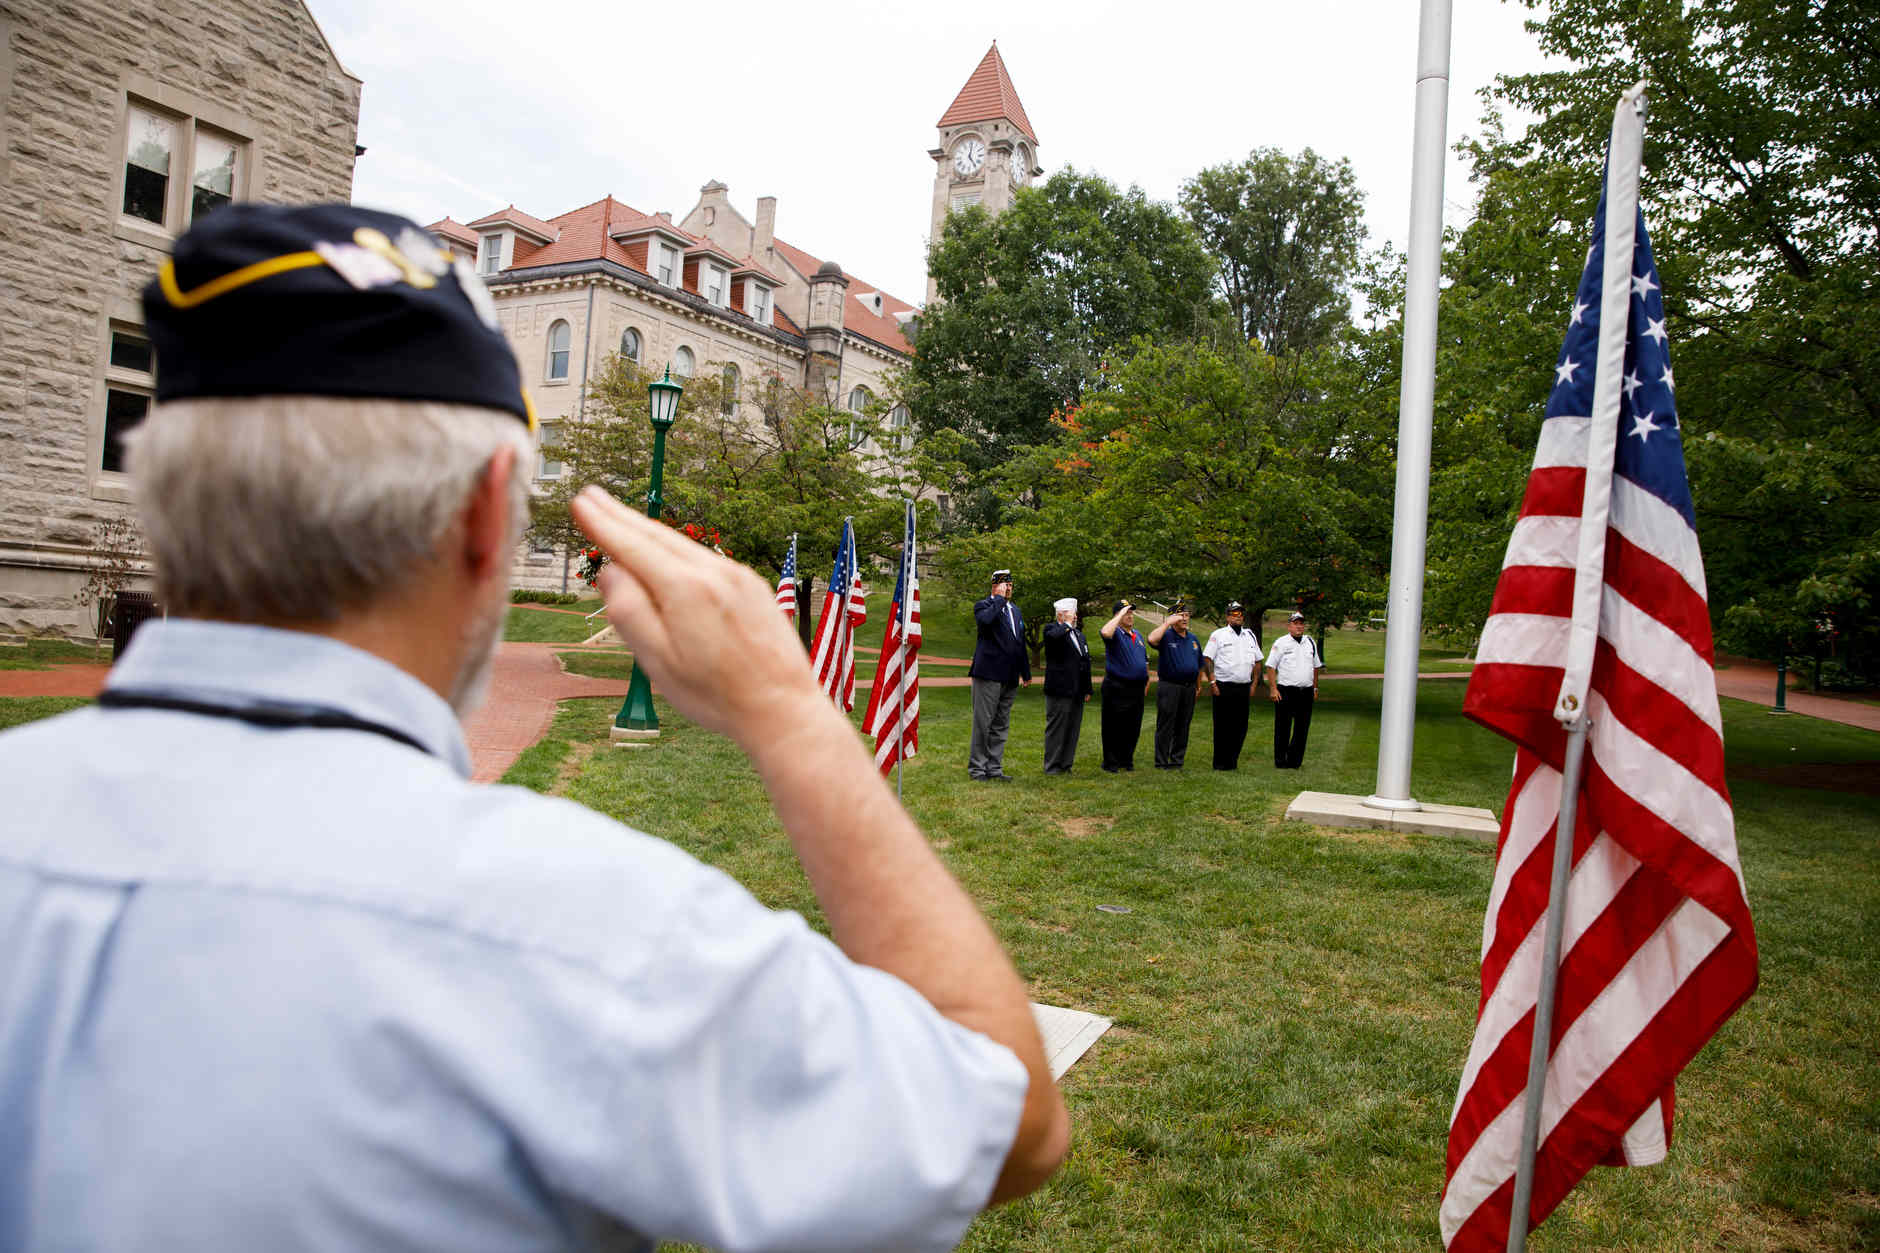 A veteran salutes as an honor guard raises a flag outside of Franklin Hall during an event celebrating National Ernie Pyle Day at The Media School at Indiana University on Friday, Aug. 3, 2018. (James Brosher/IU Communications)